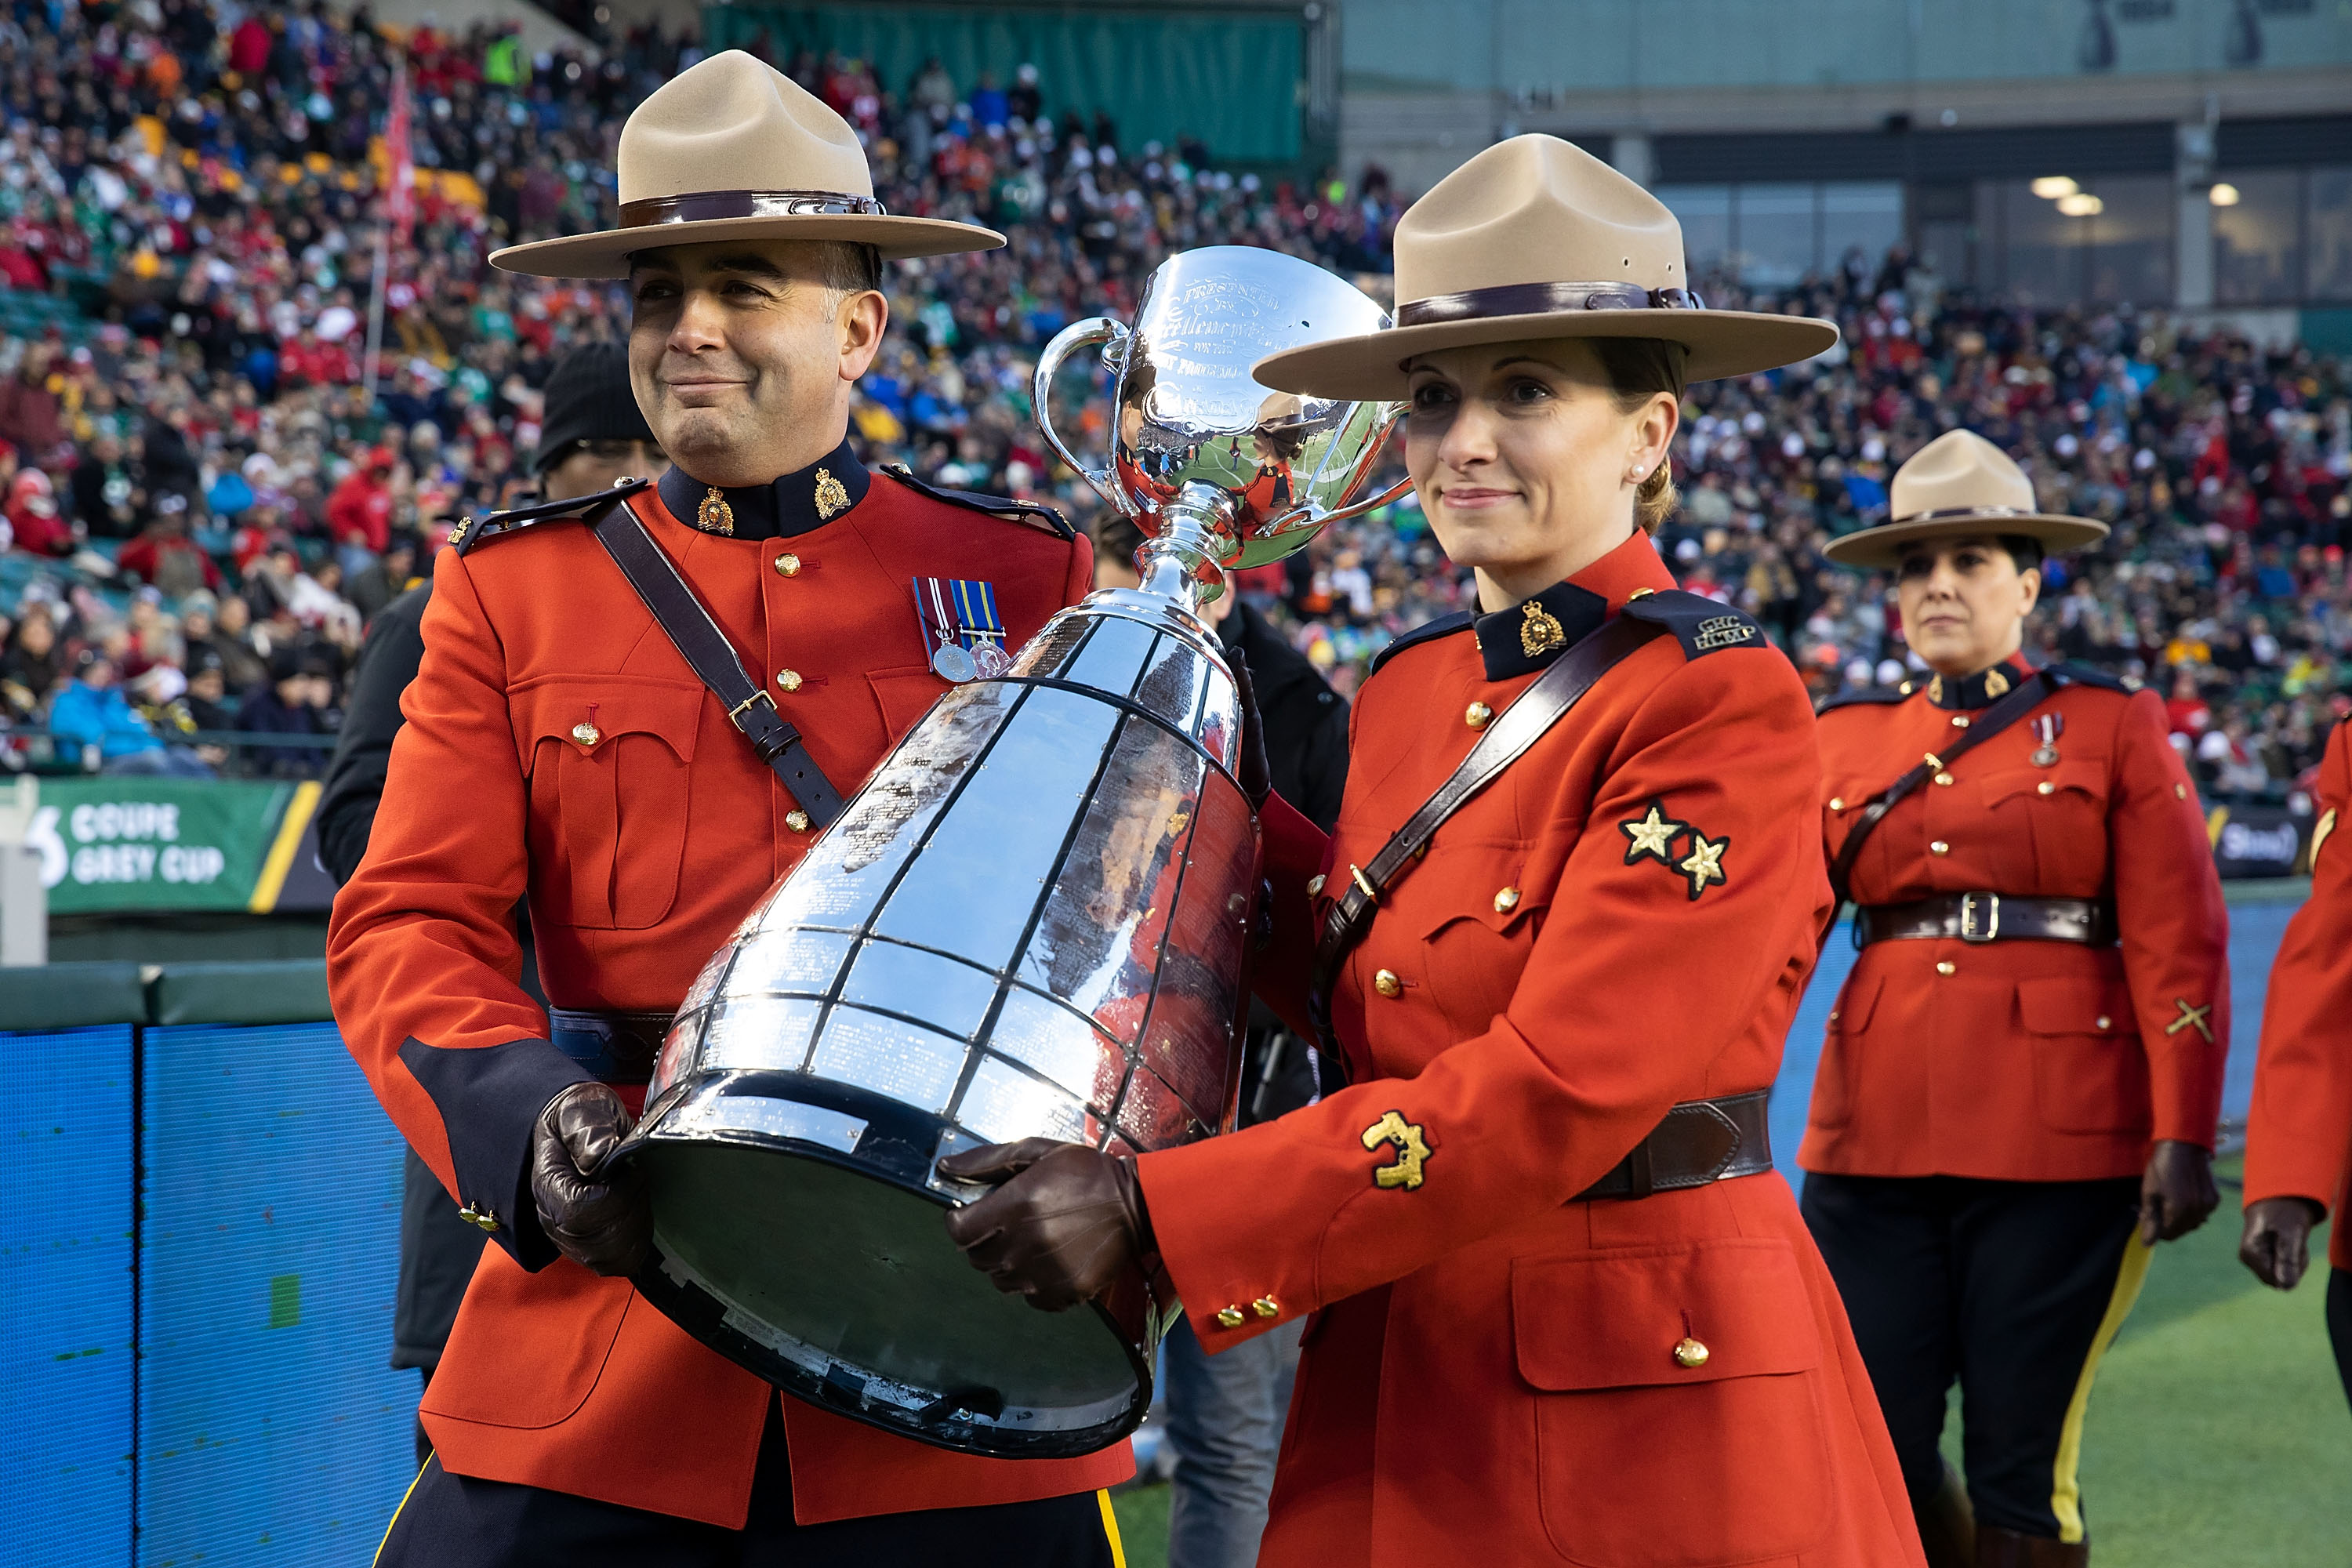 106th Grey Cup Championship Game